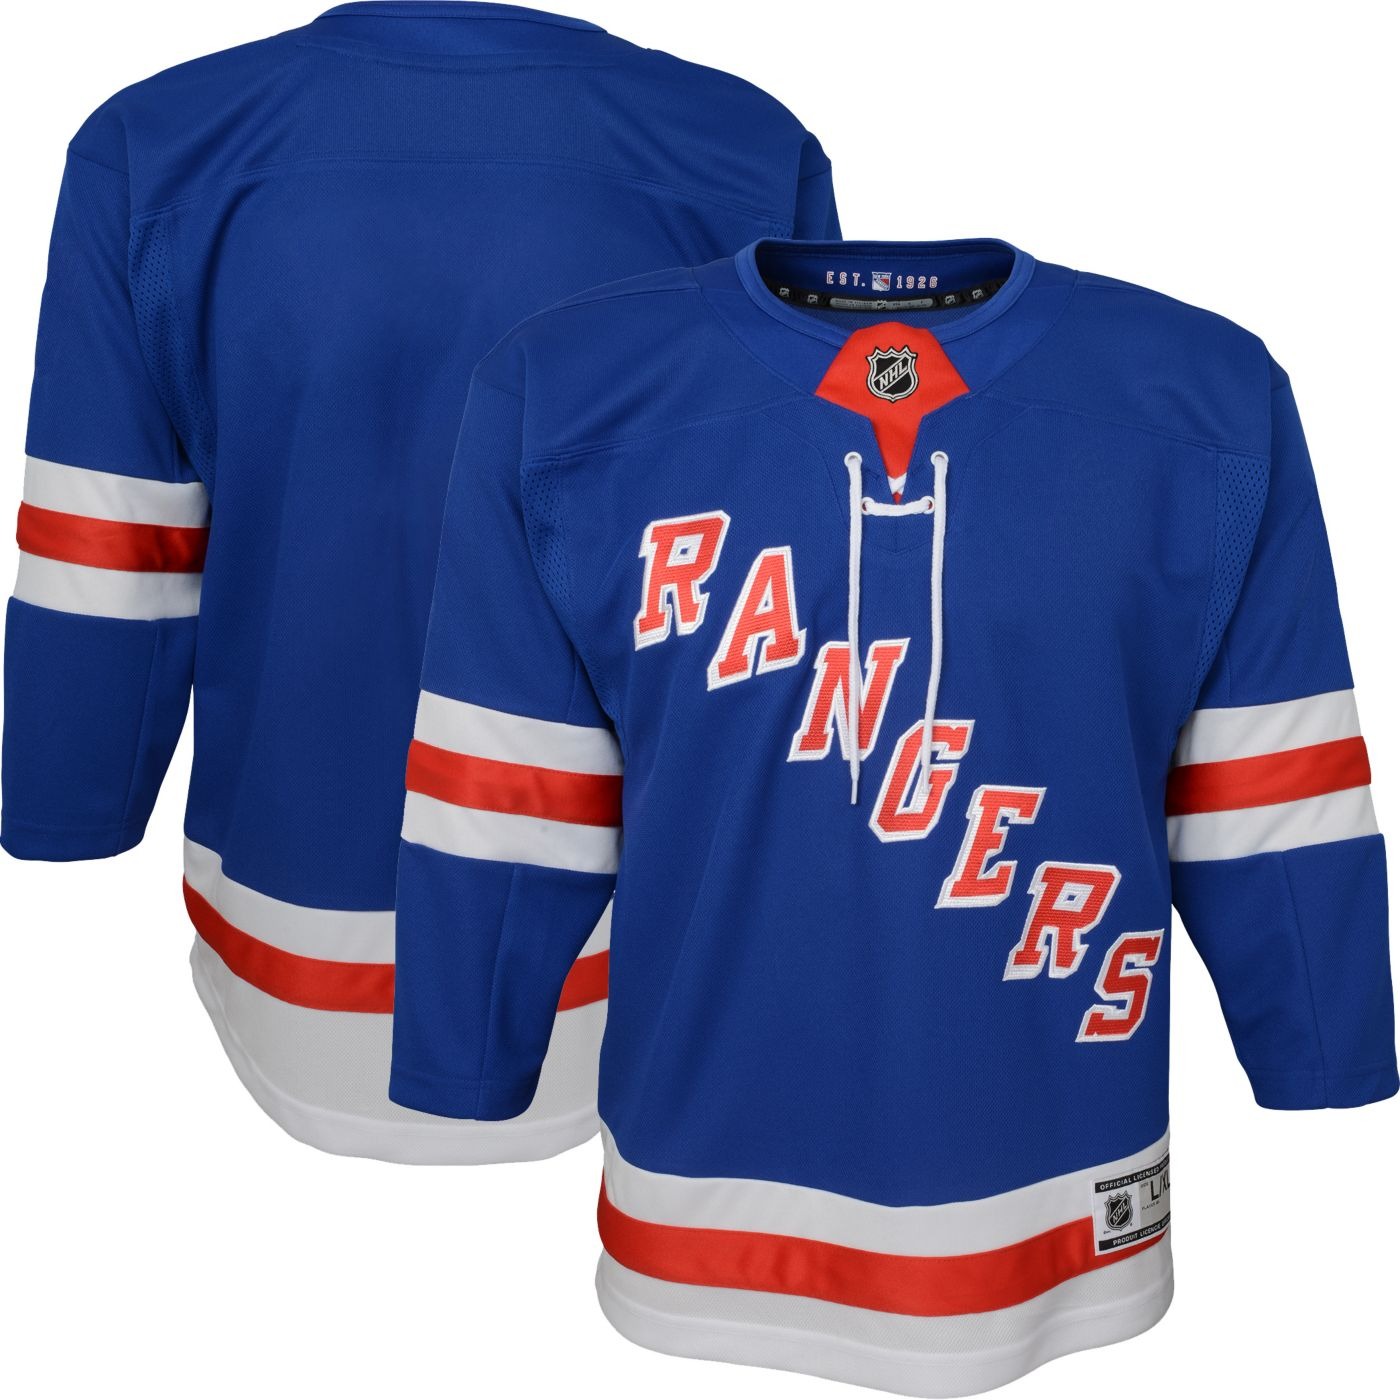 NHL Youth New York Rangers Premier Home Jersey